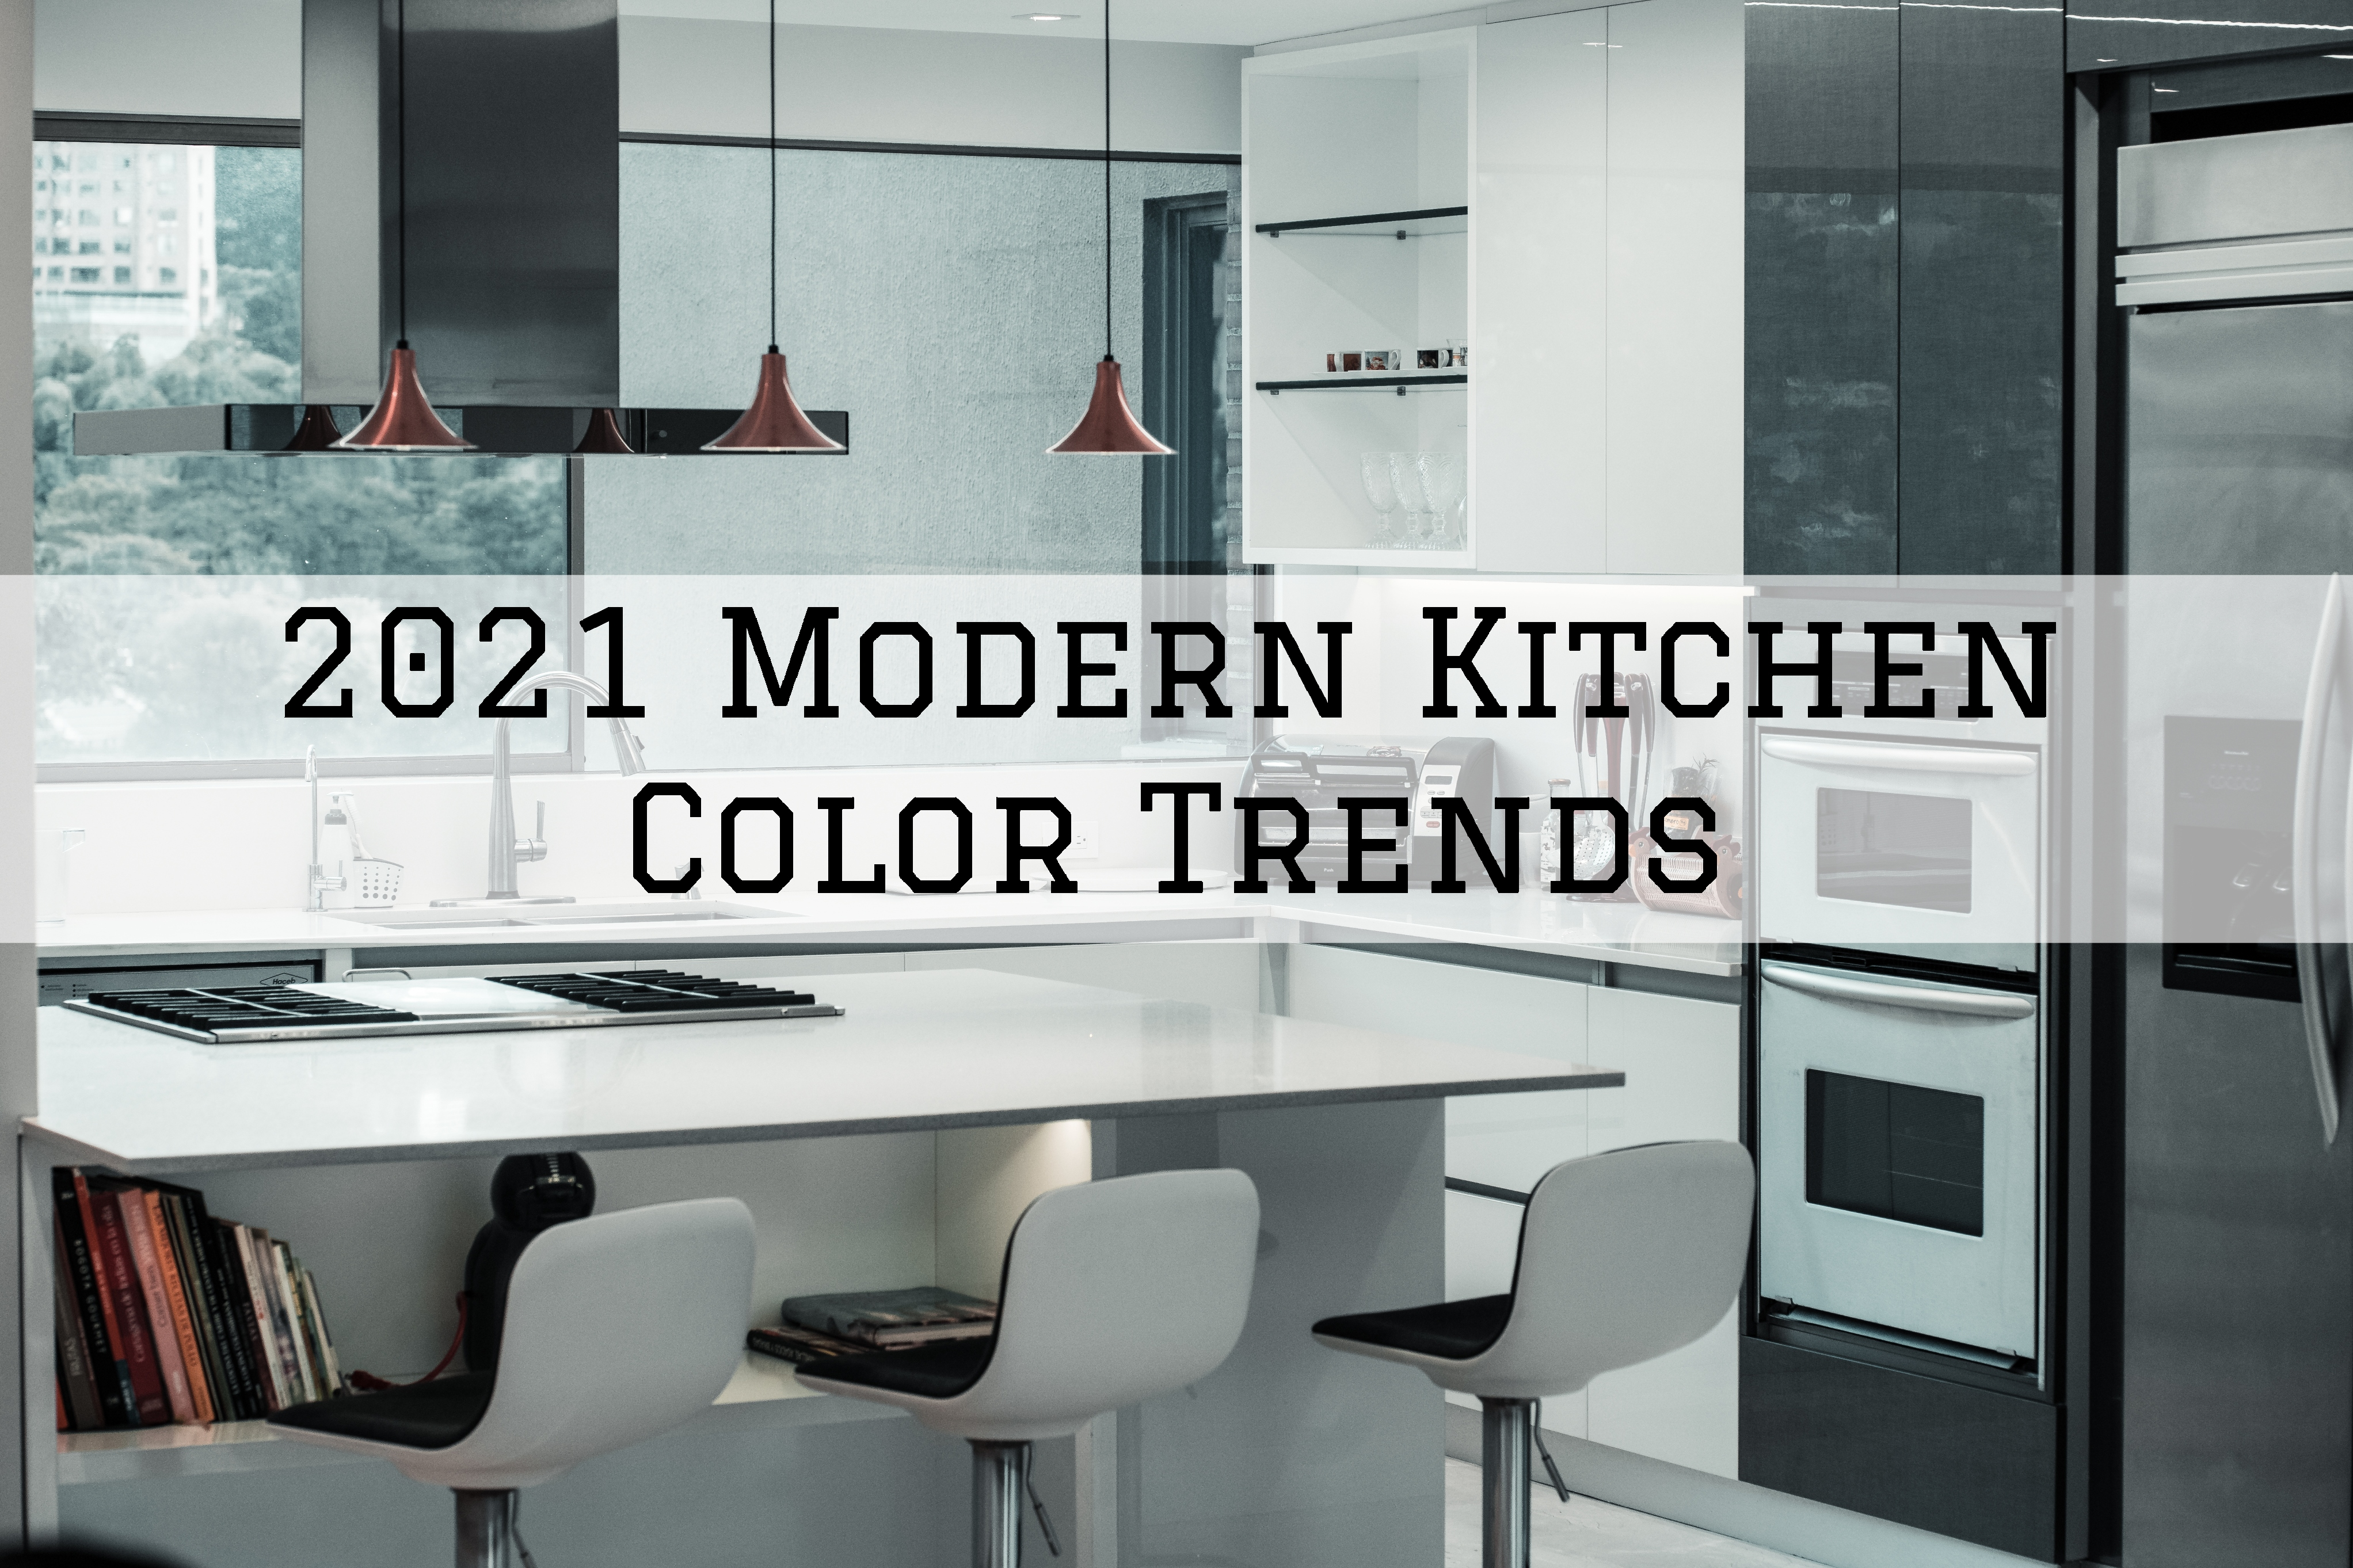 2021 Modern Kitchen Color Trends in Omaha, NE.